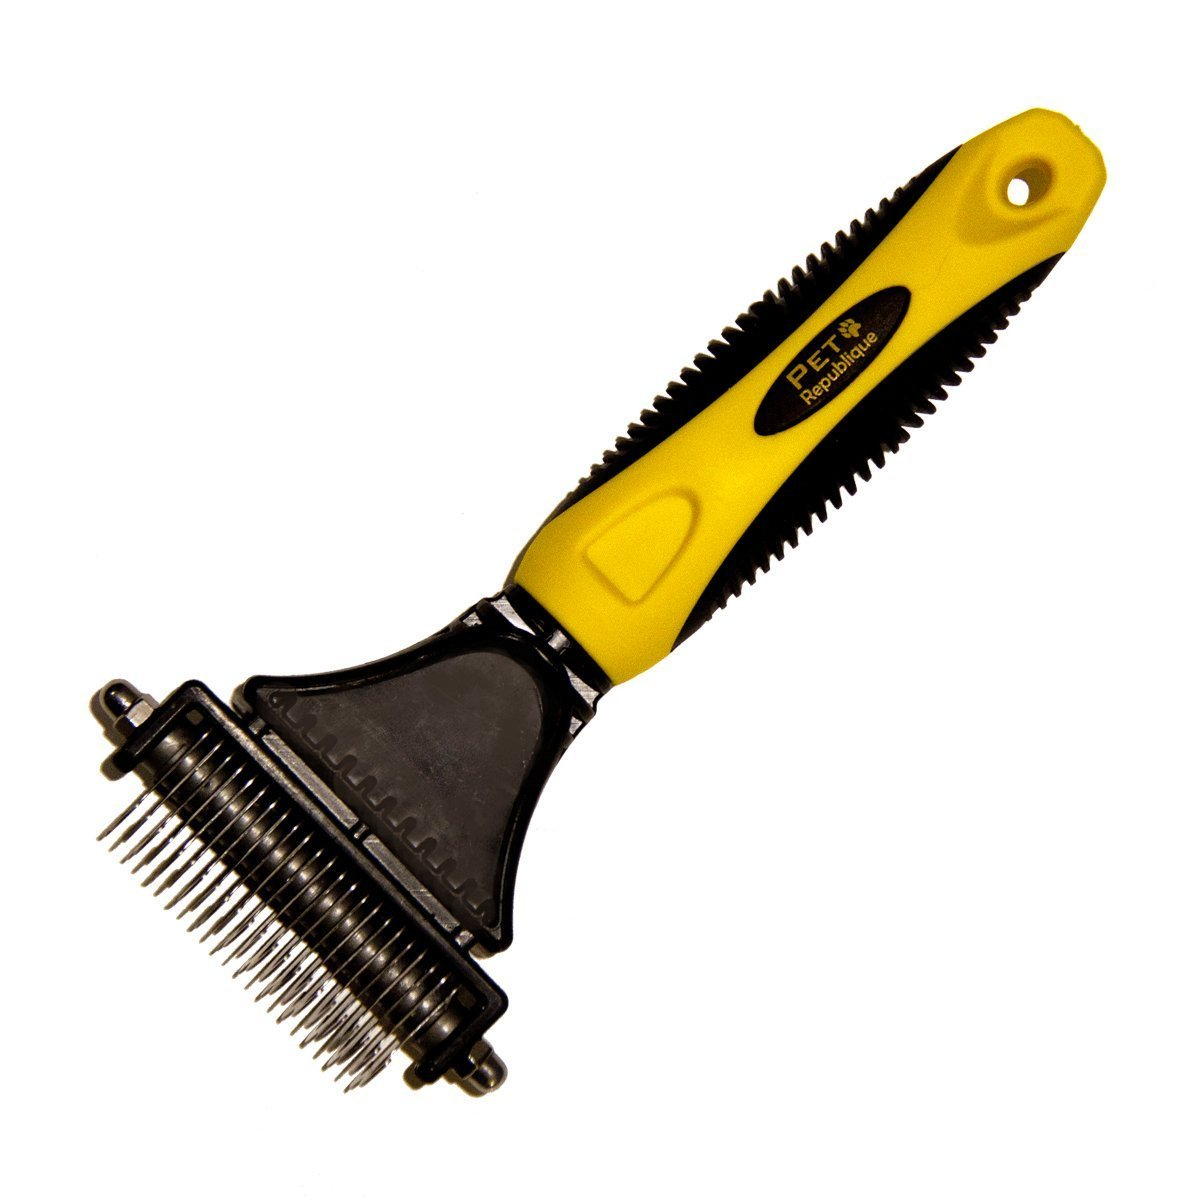 *LAUNCH SALE* Pet Republique ® Professional Dematting Comb Rake - Dual Sided 12+23 Teeth Mat Brush Splitter - for Dogs, Cats, Rabbits, Any Long Haired Breed Pets